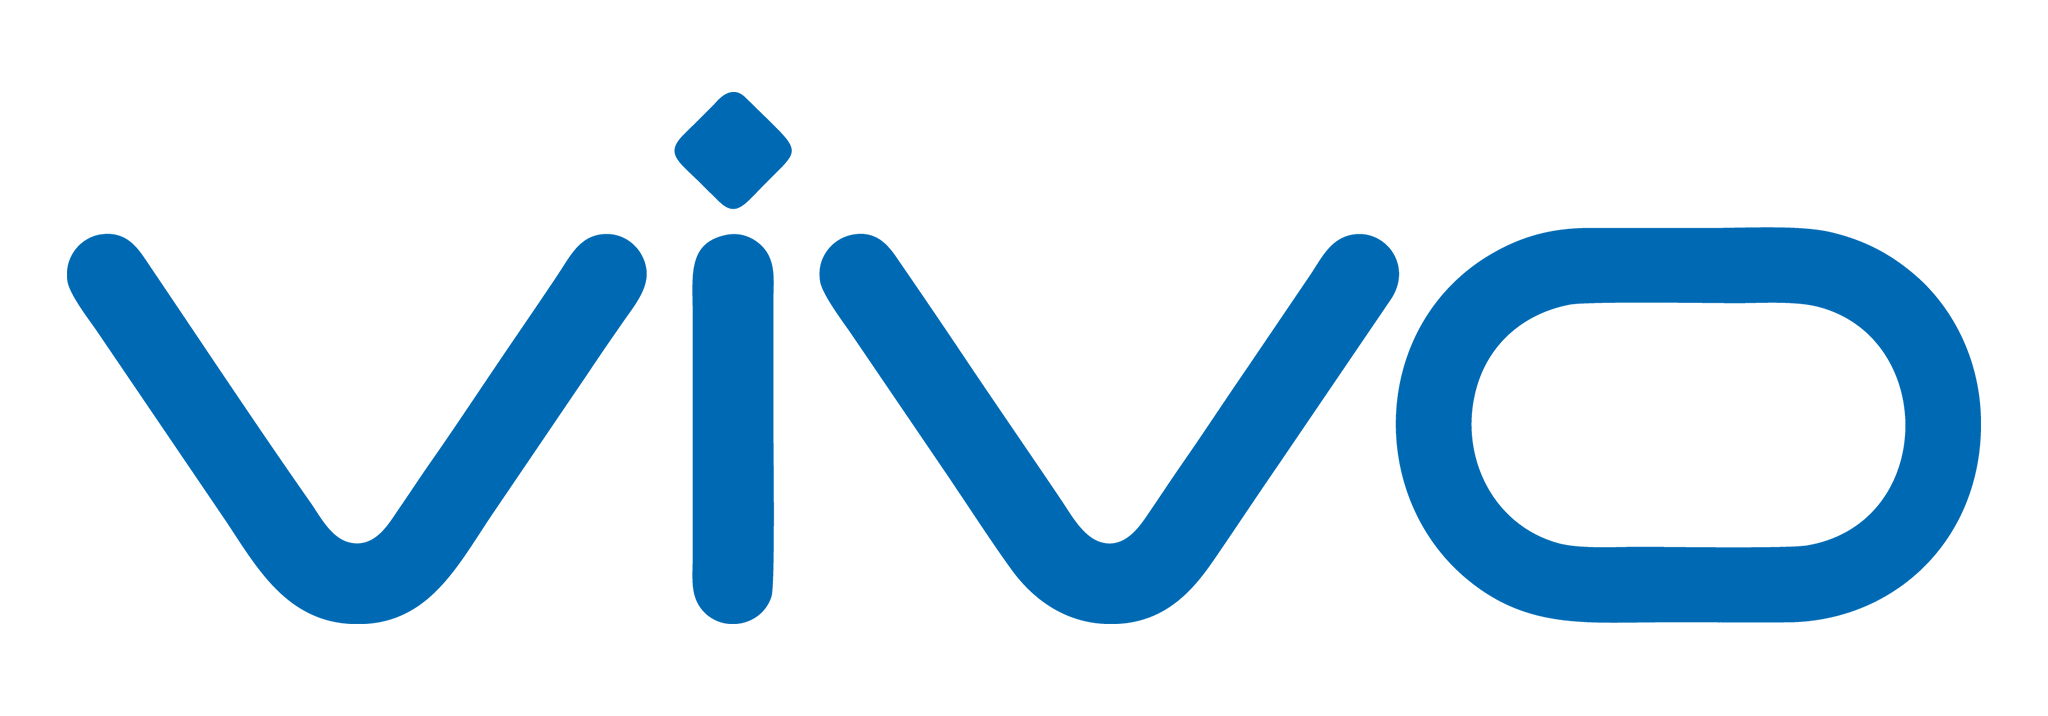 vivo logo Transparent PNG.